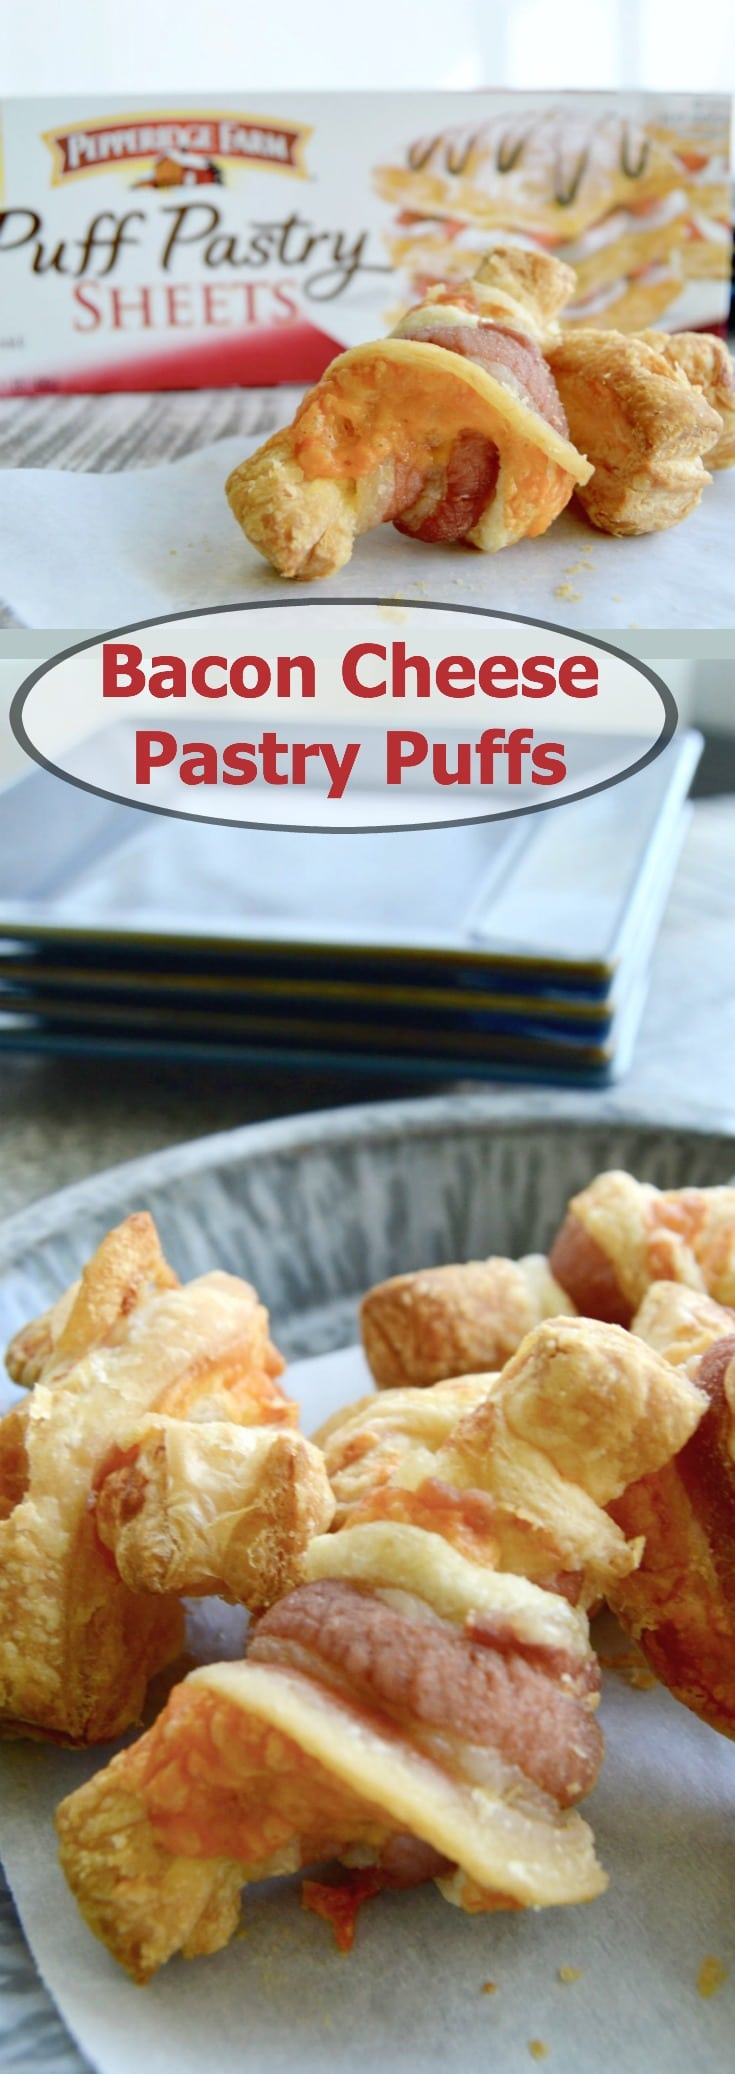 Bacon Cheese Pastry Puffs can be made quickly and with things you already have in your fridge.  Cheesy in the center, wrapped with bacon each  puff pastry bite is jammed full of flavor.